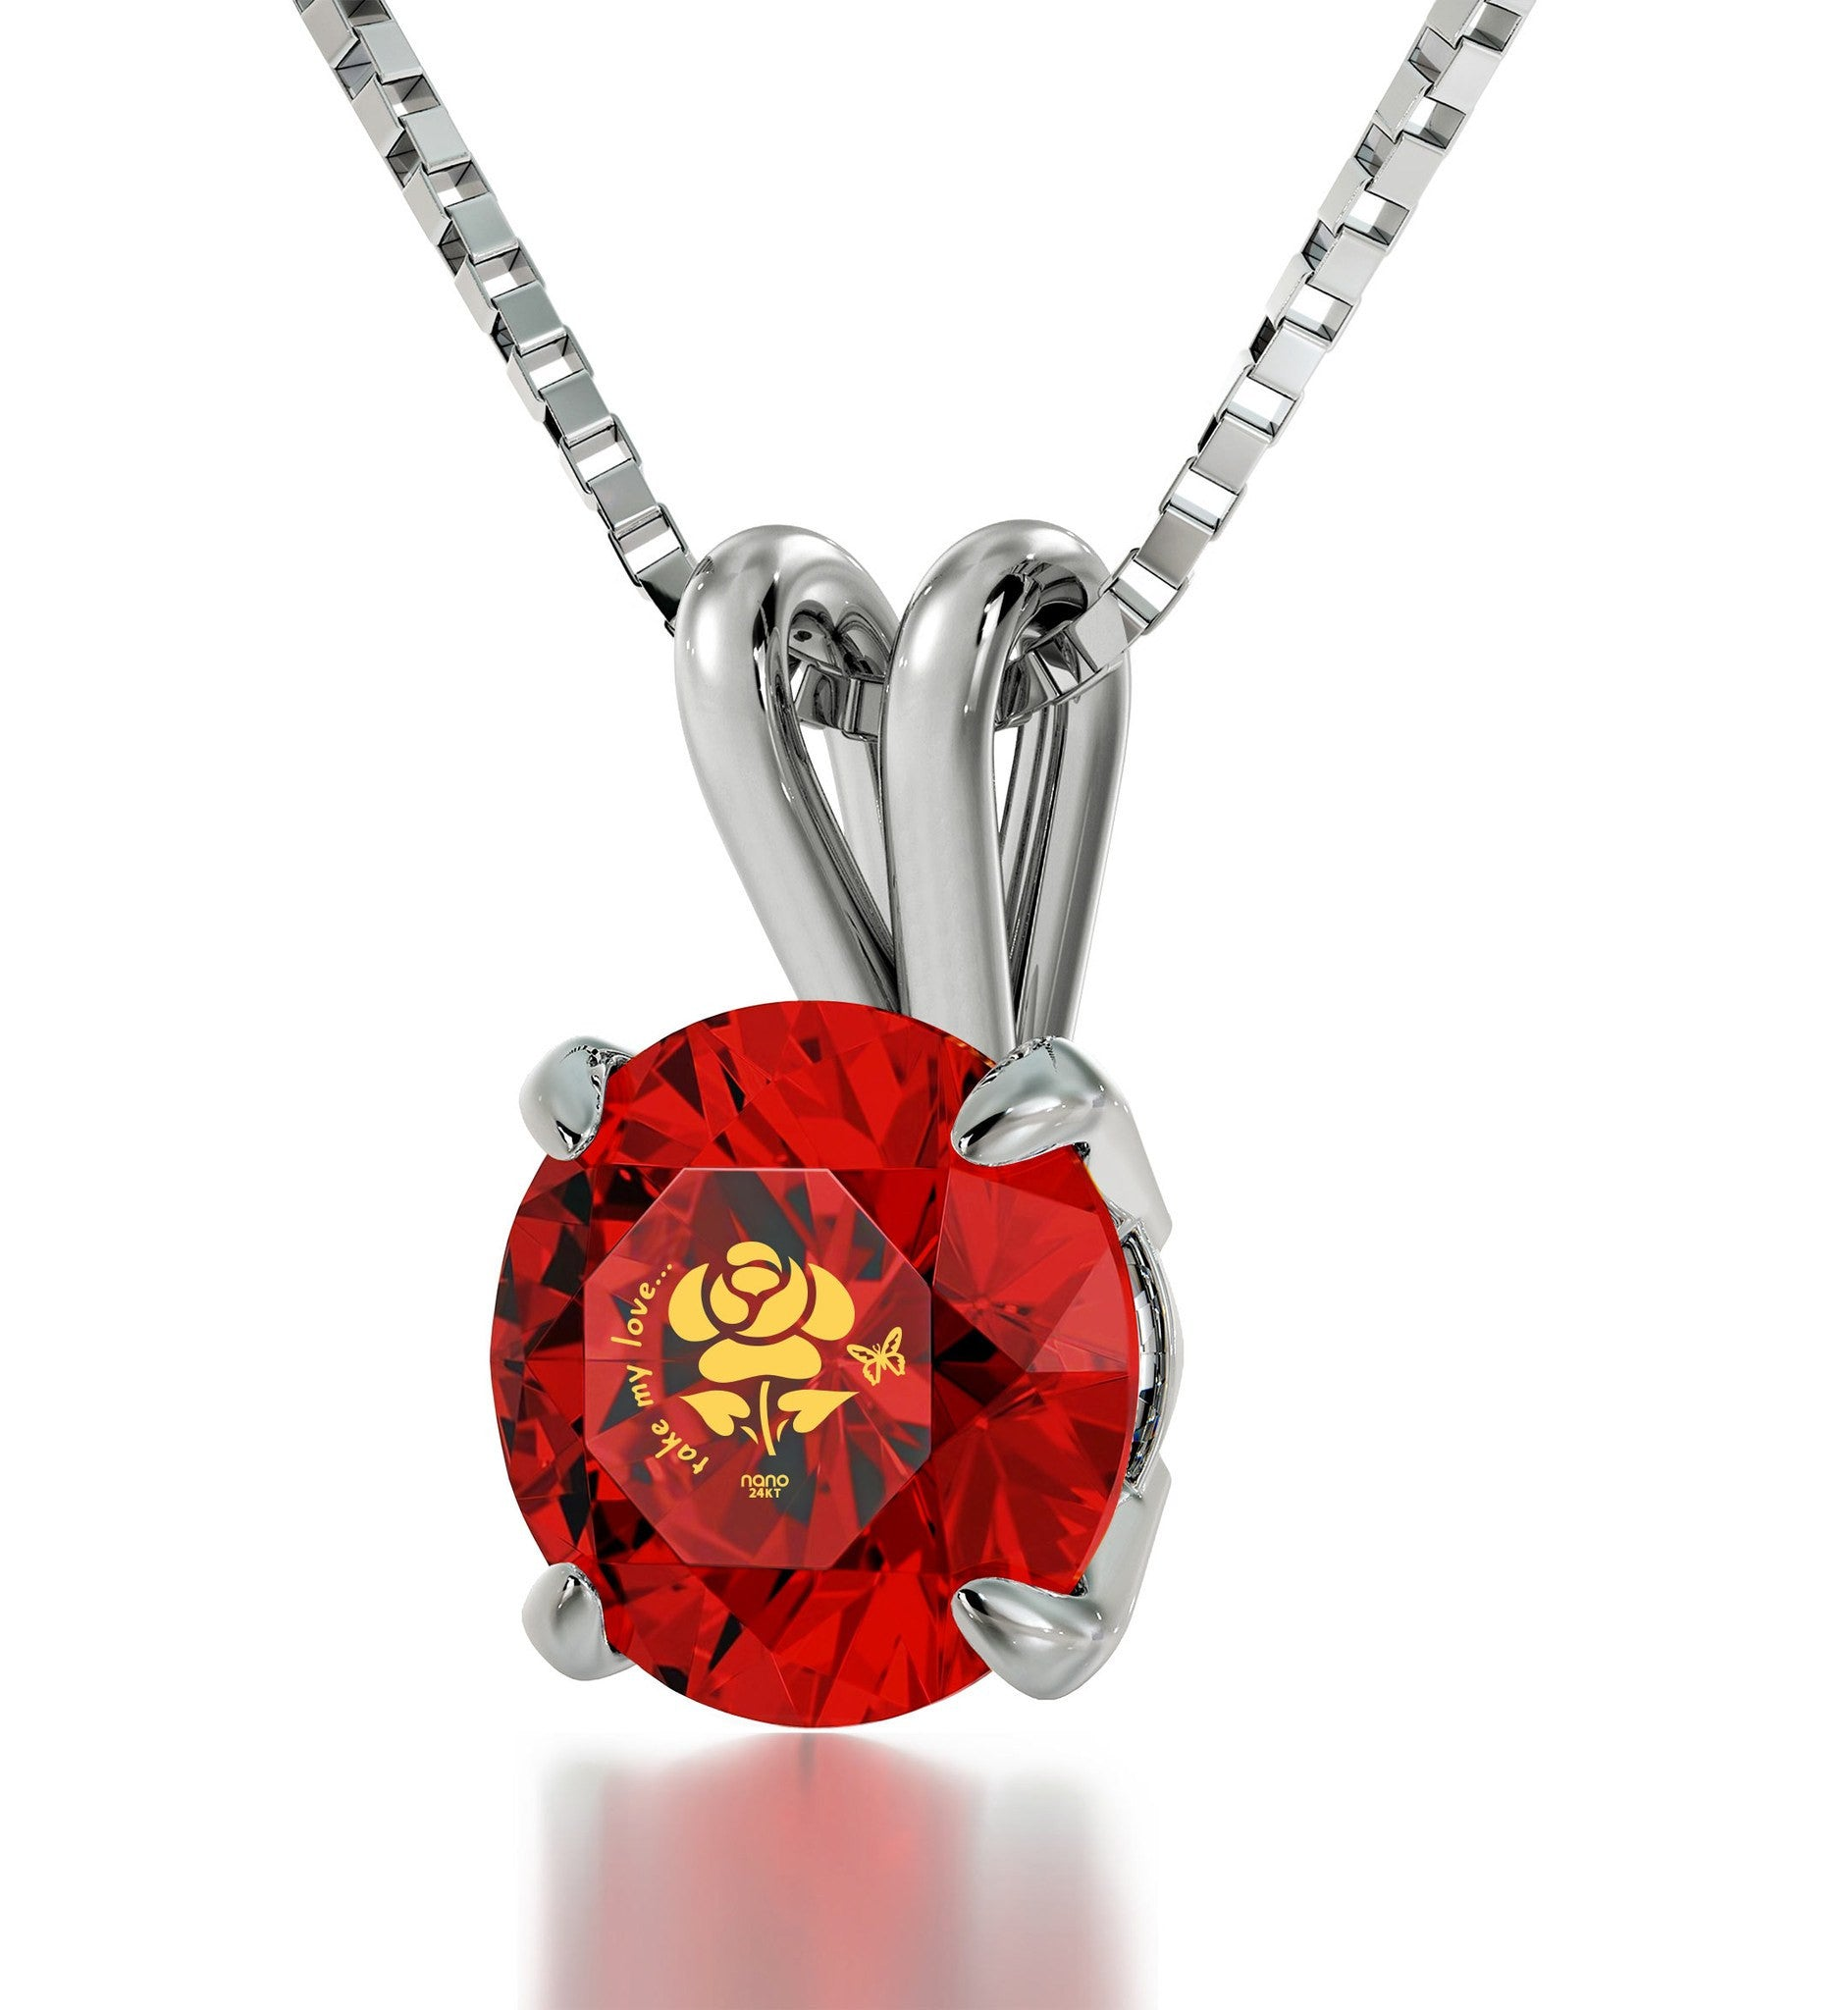 """Top Gifts for Wife, Unusual Red Stone Charm on 14k White Gold Chain, Christmas Present Ideas for Her, by Nano Jewelry"""